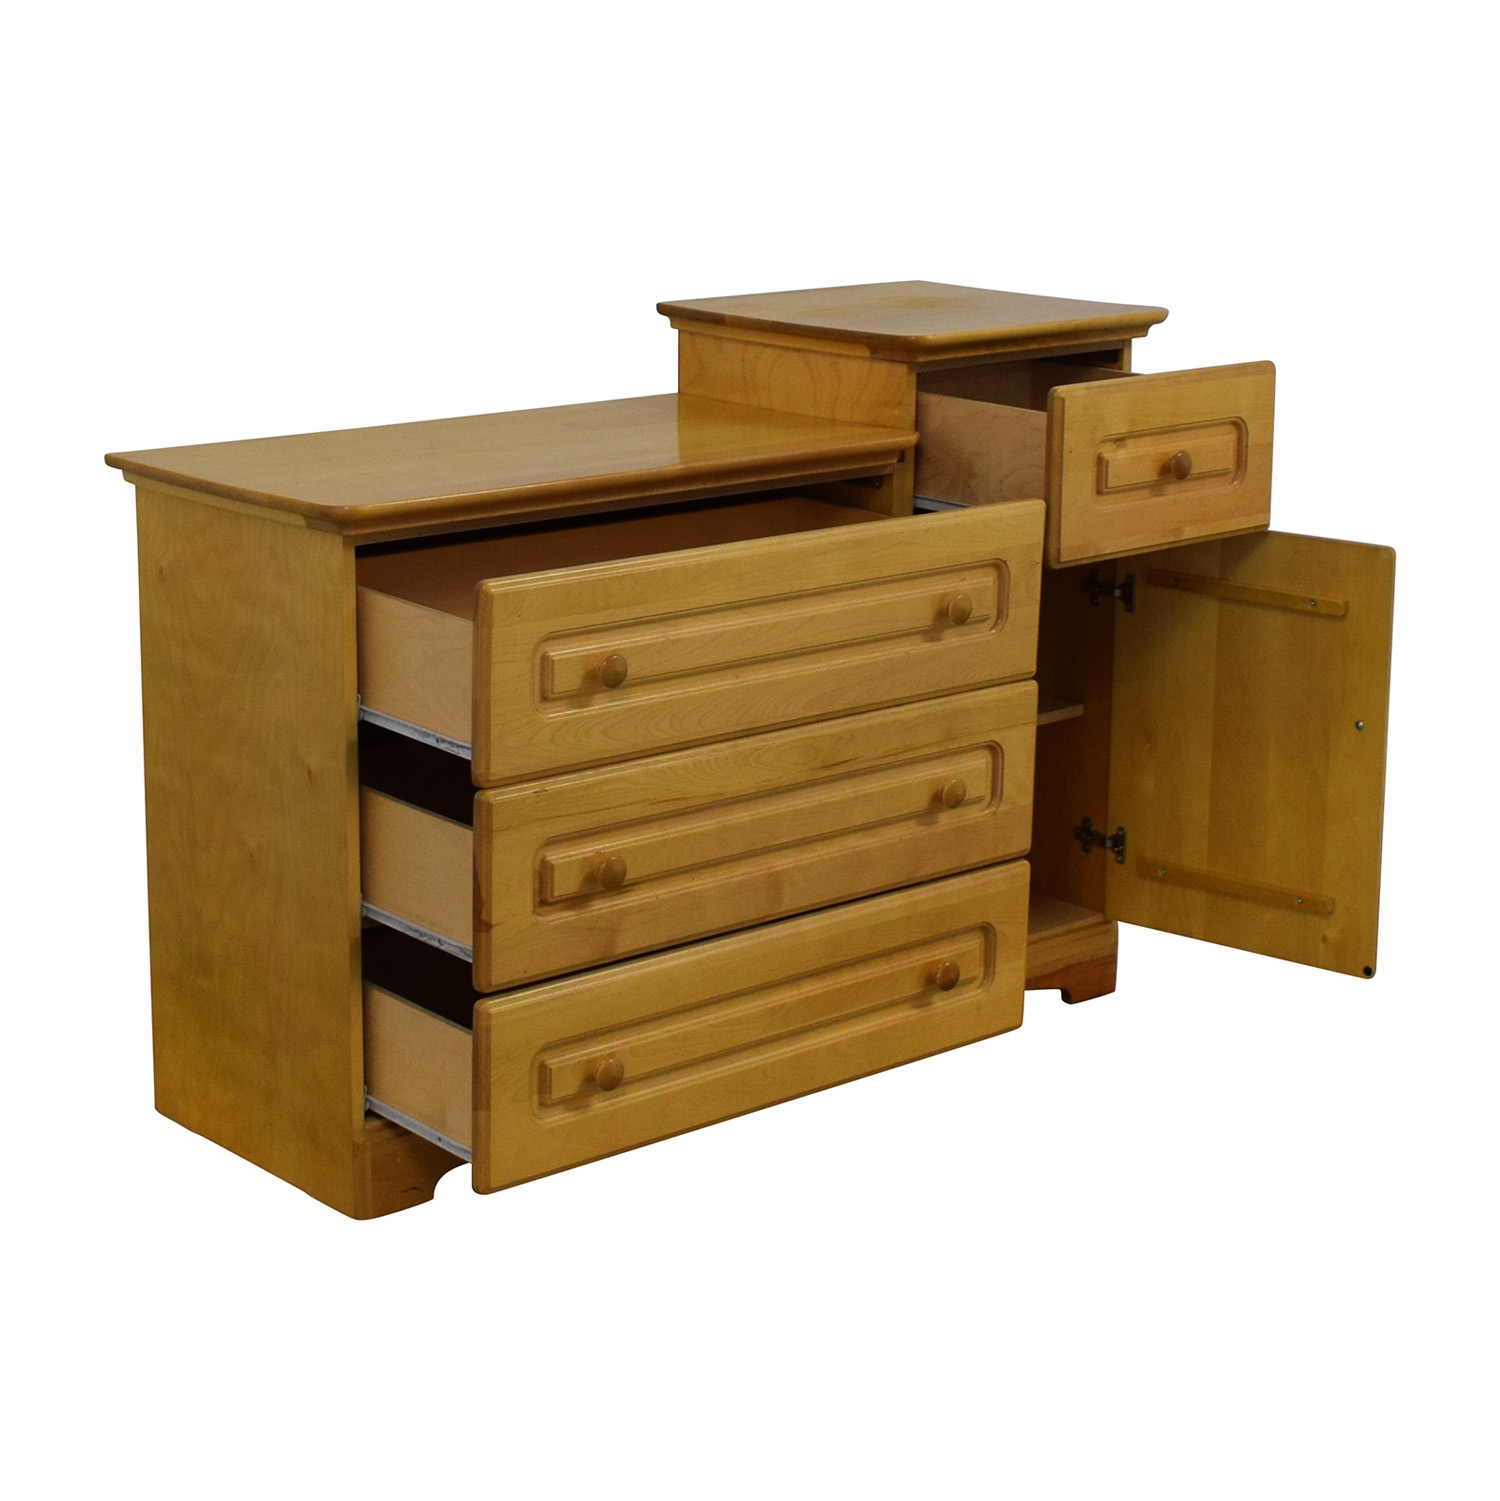 Pali Modern Four Drawer Dresser And Cabinet / Dressers